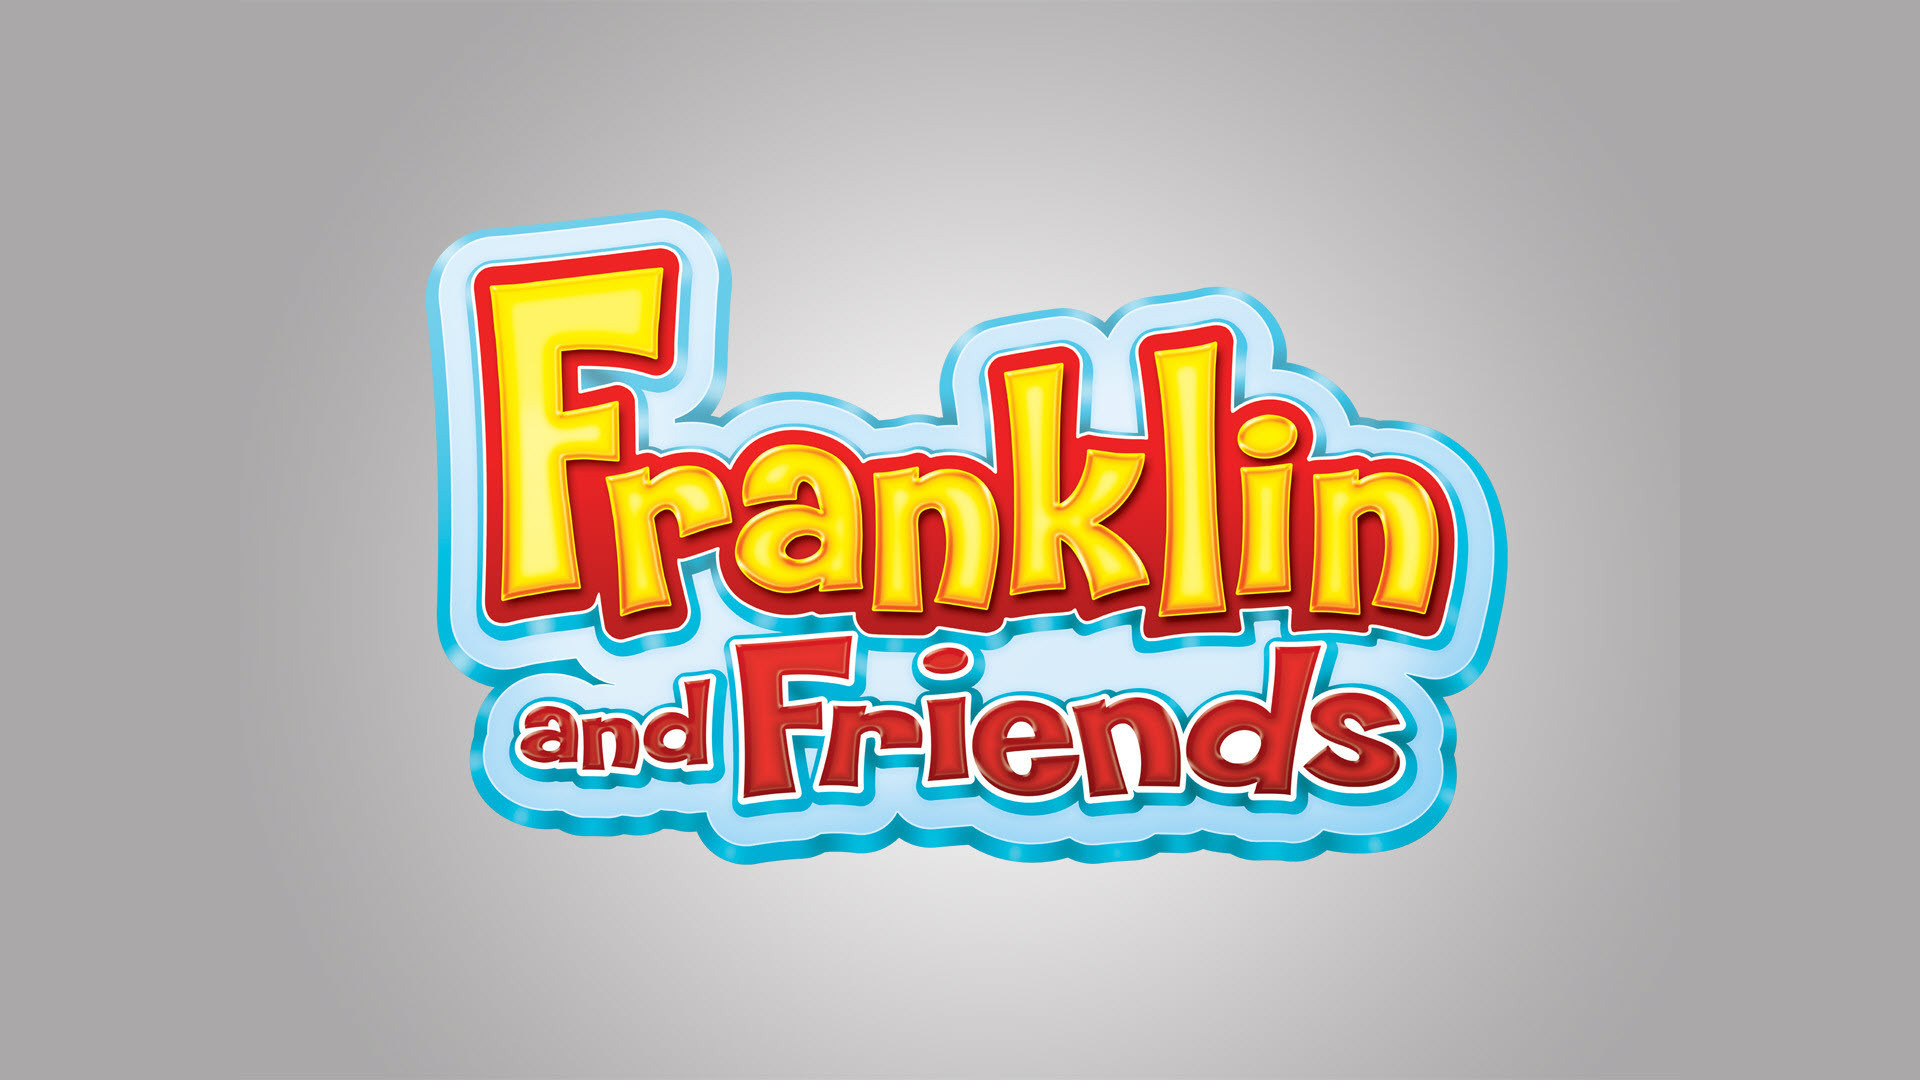 Show Franklin and Friends